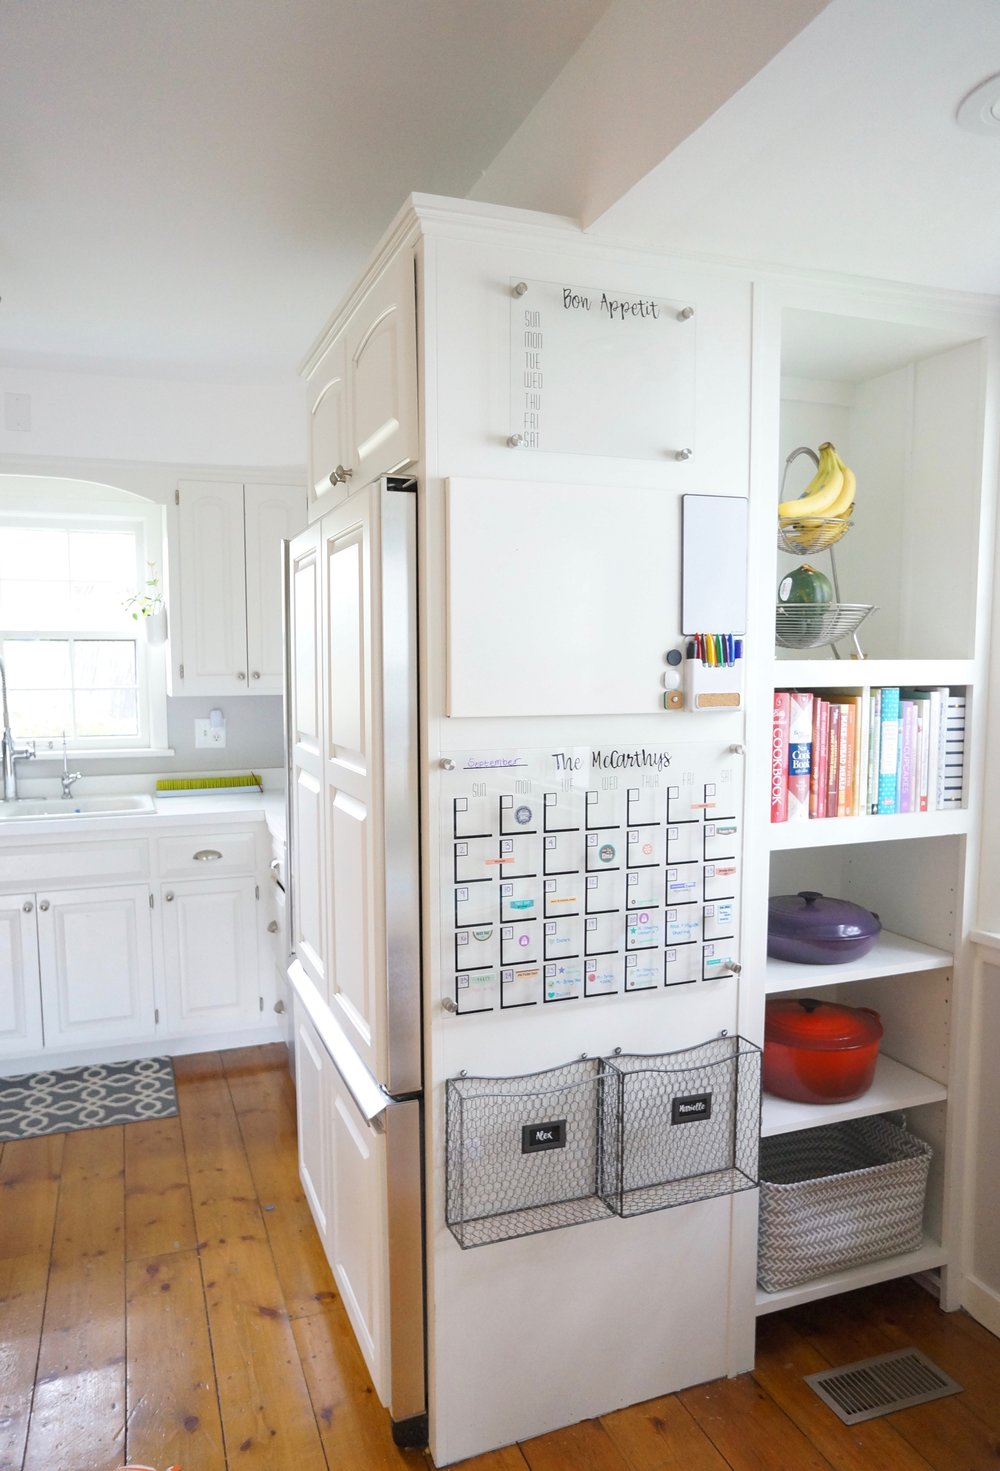 Using any blank space in your home, you can create a Family Command Center. This can be in your kitchen, mudroom or any other space your family frequently uses.